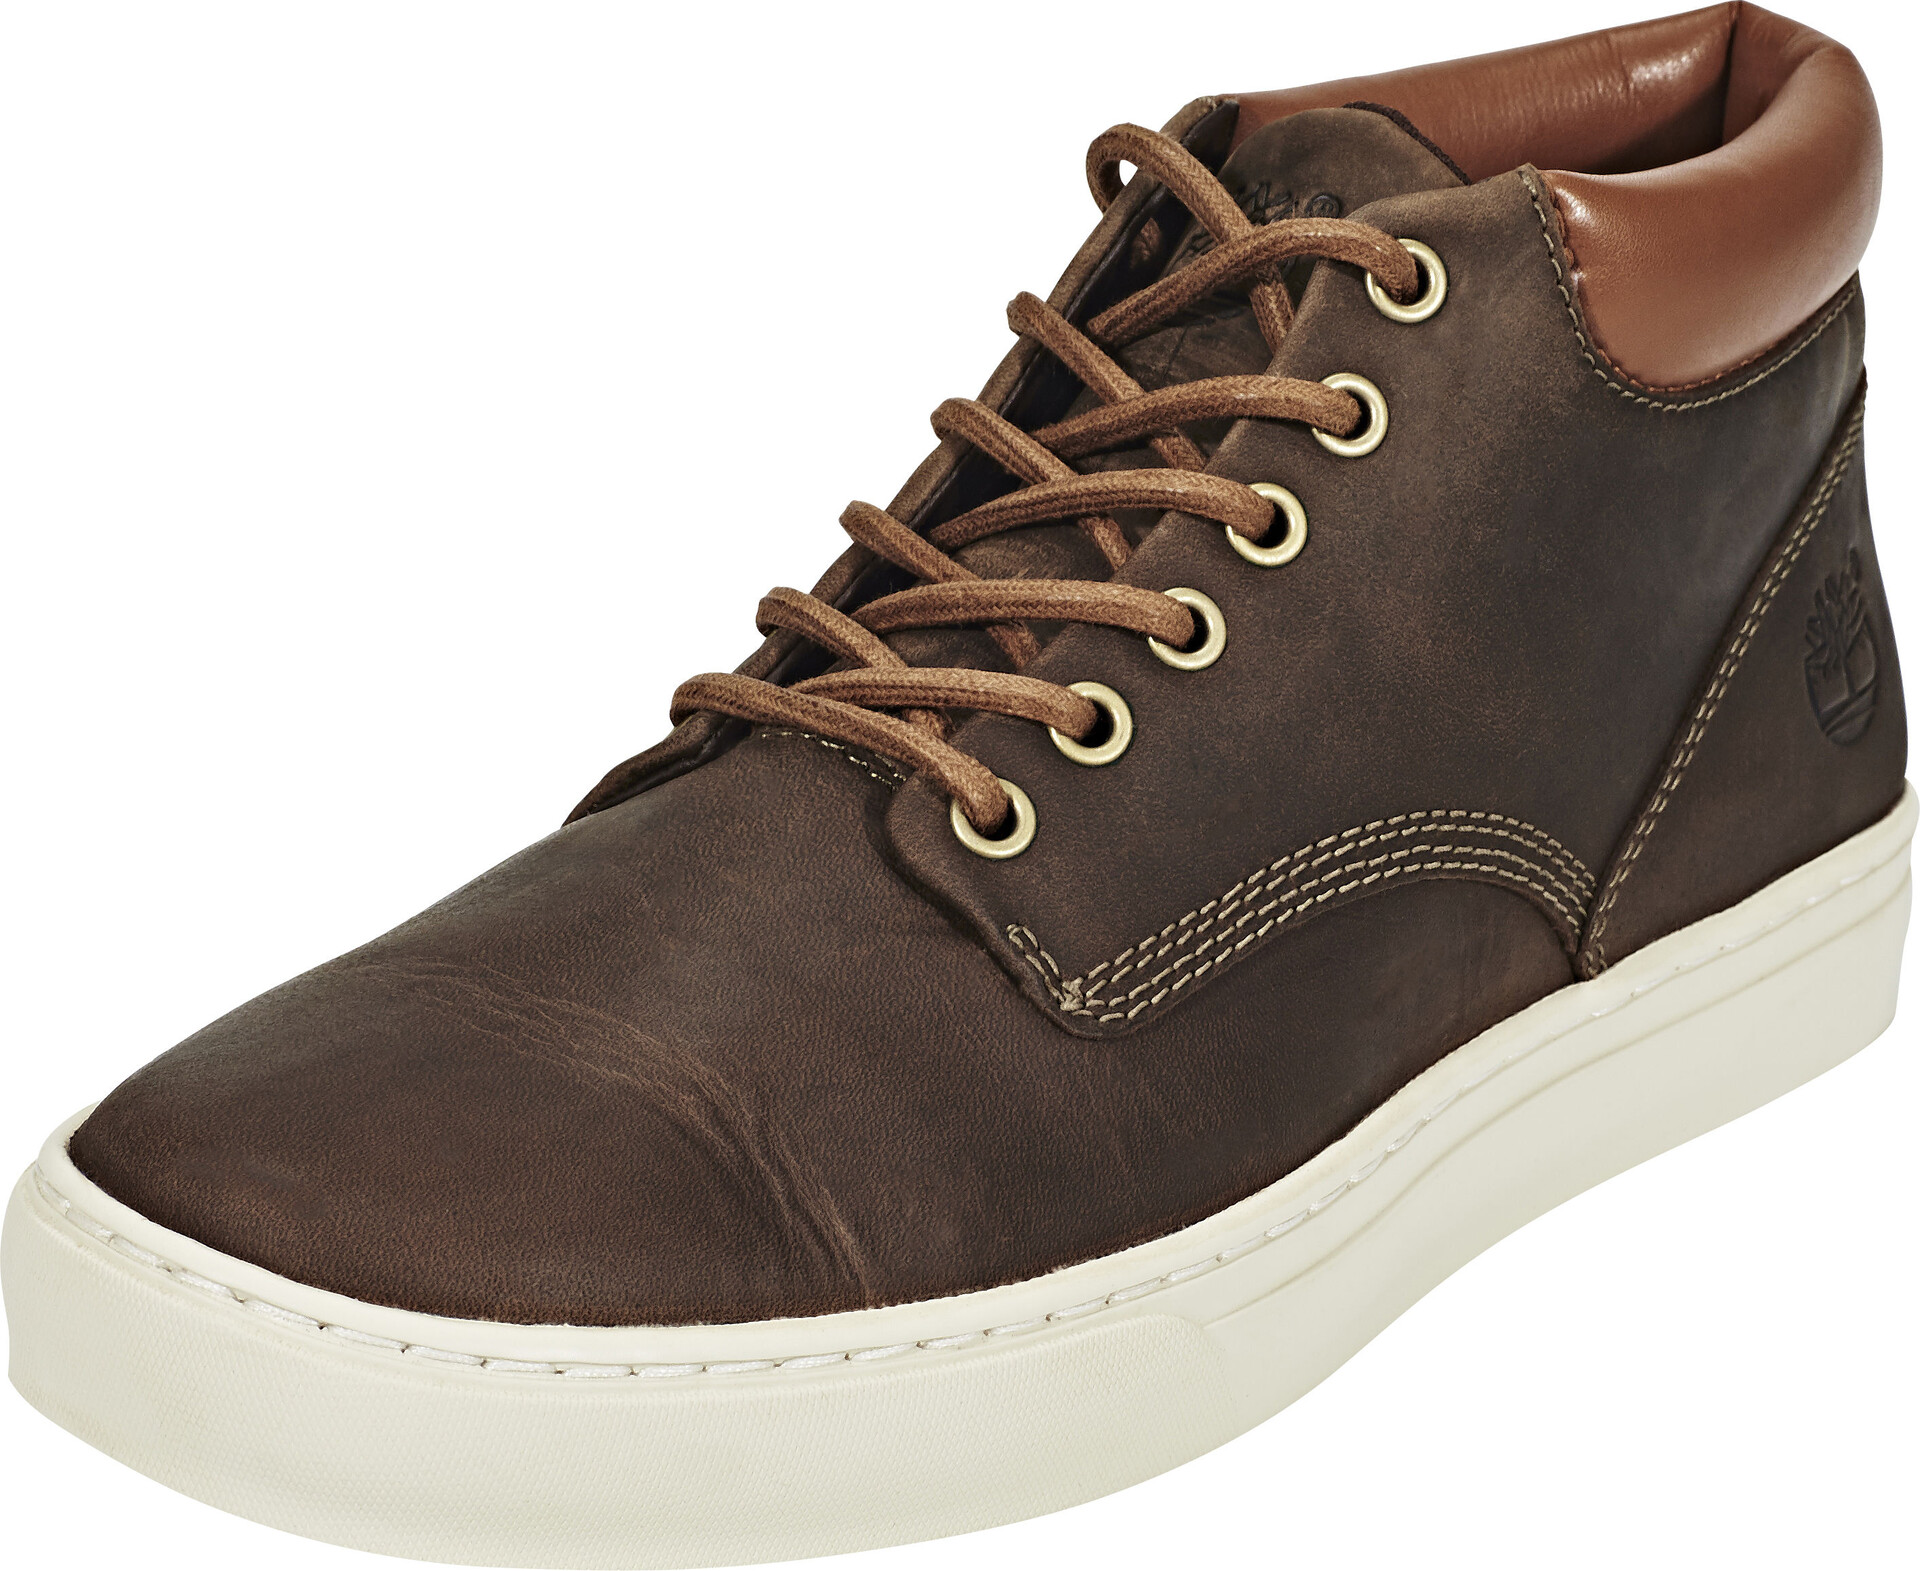 Chaussure Homme Timberland Adventure 2 Cupsole Chukka Chaussures Homme Marron